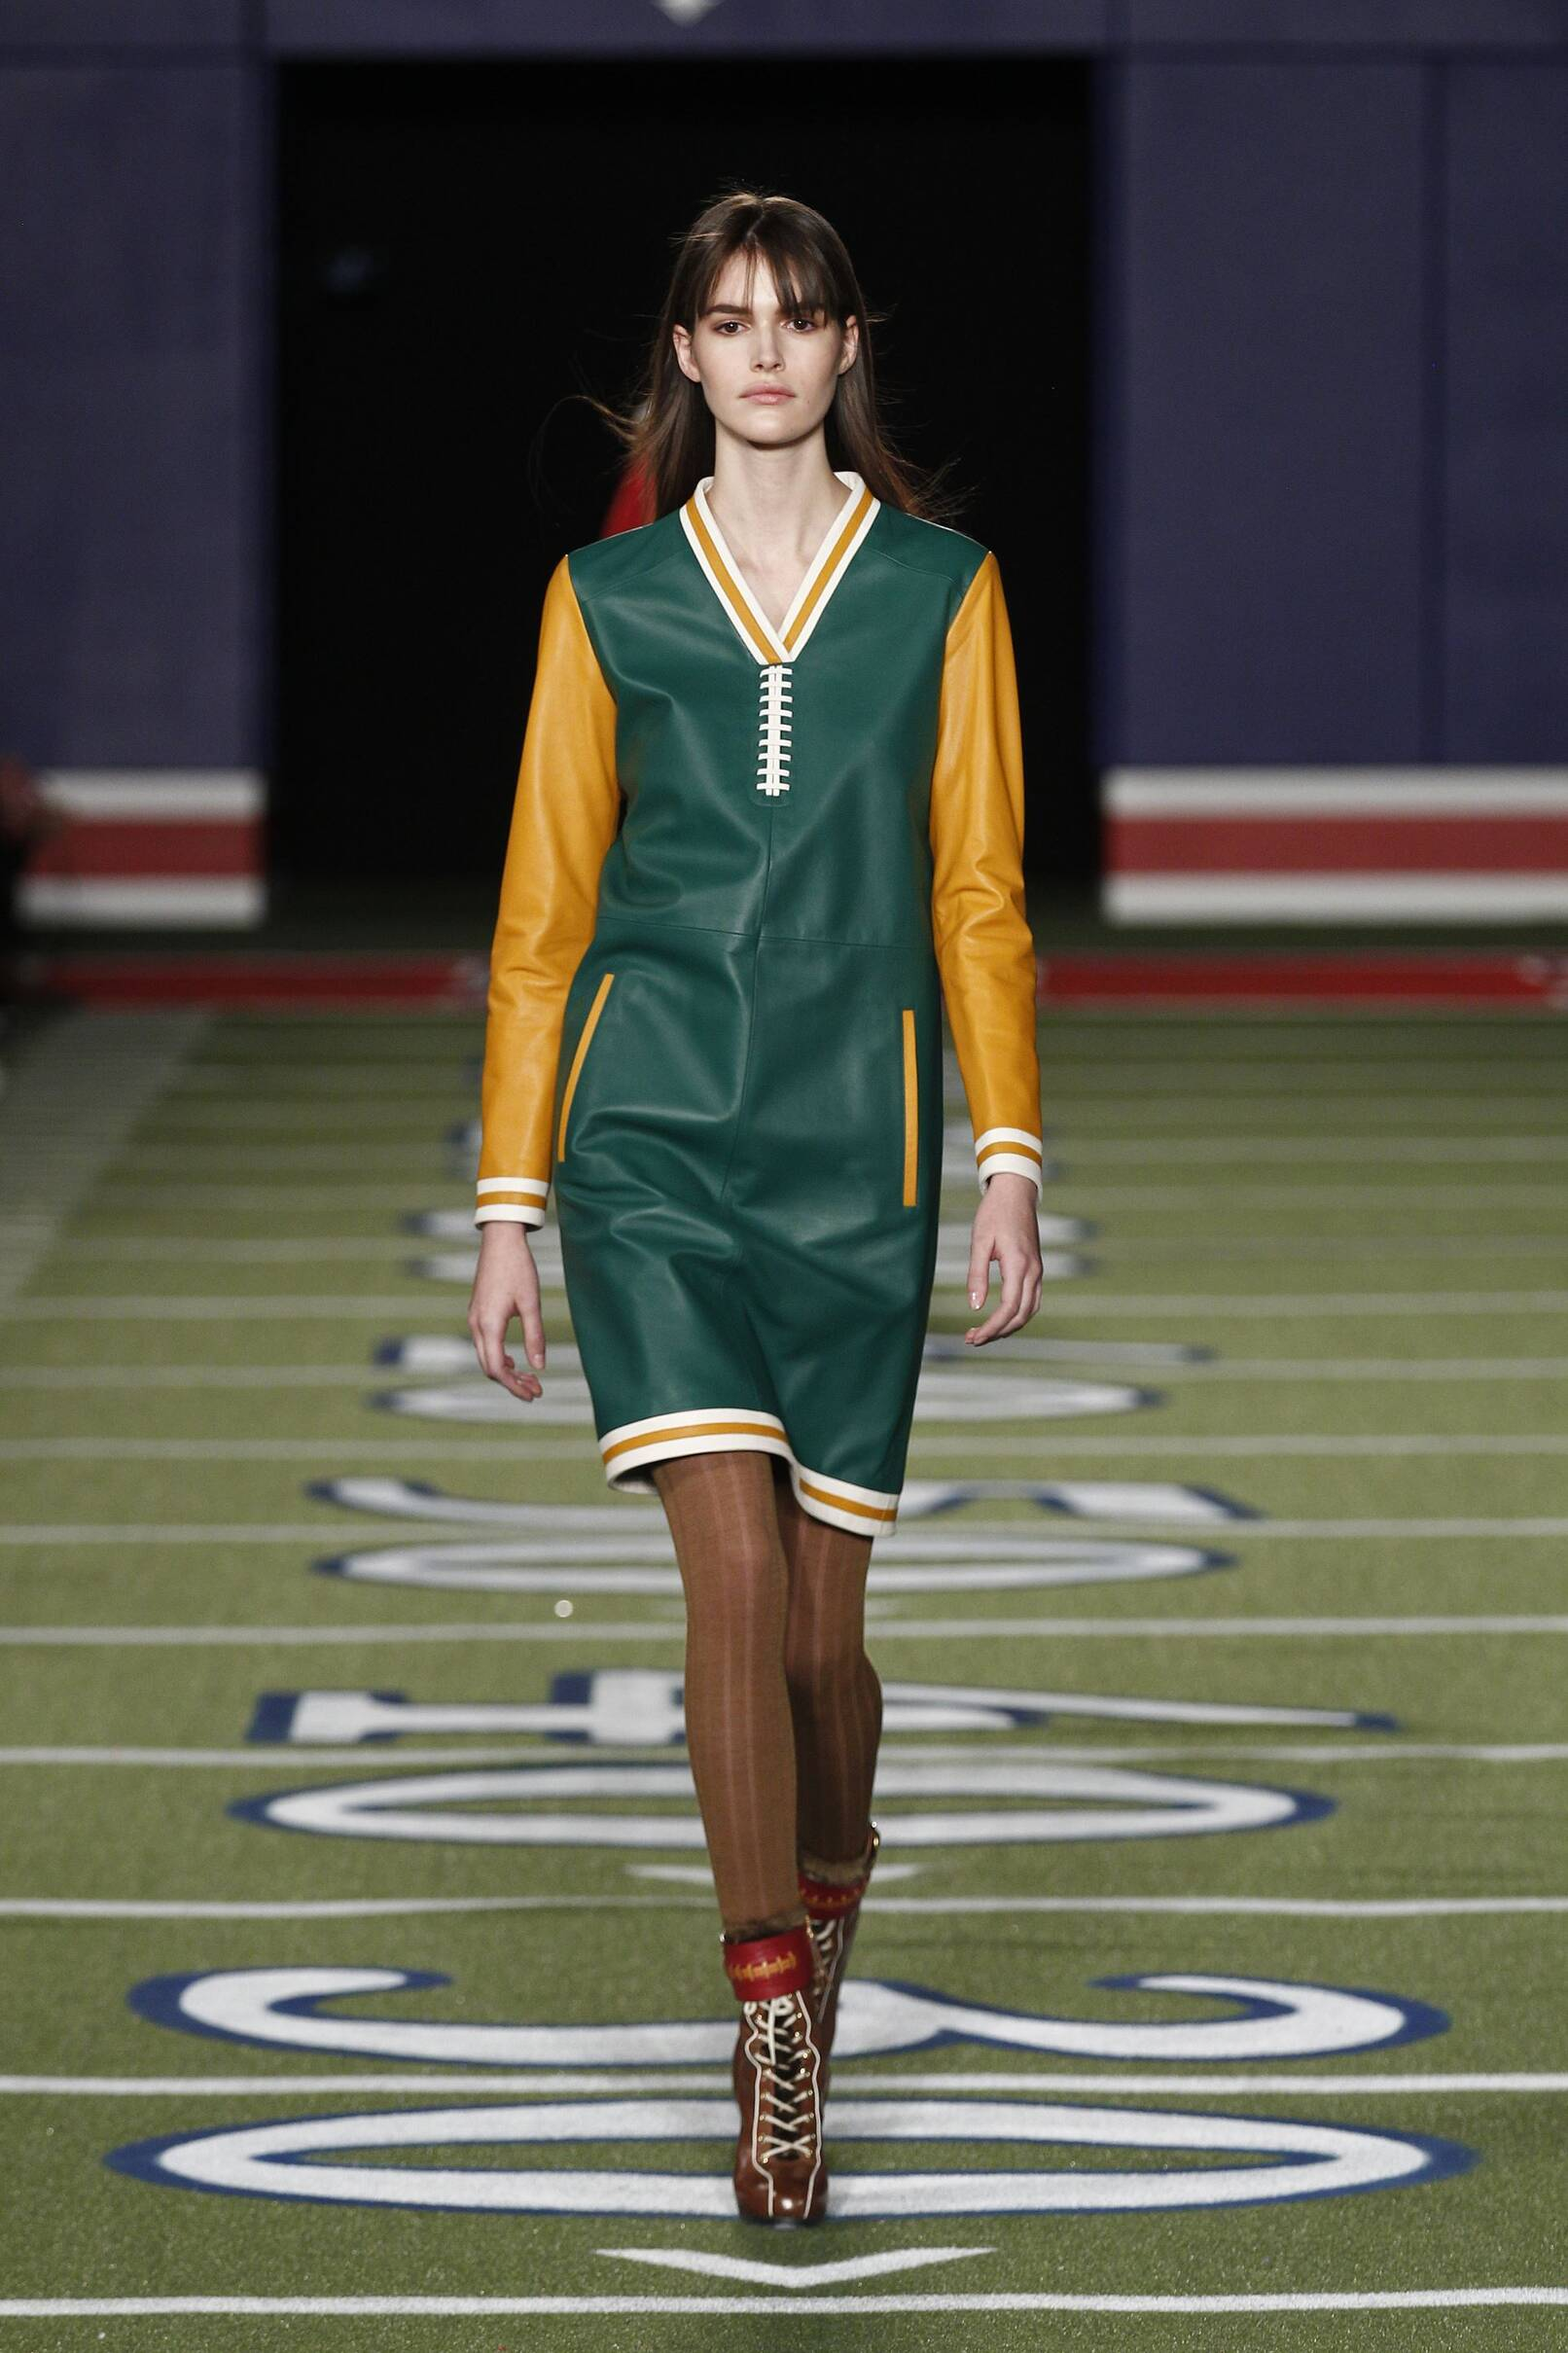 1c8c0a78 Catwalk Tommy Hilfiger Fall Winter 2015 16 Women's Collection New York  Fashion Week